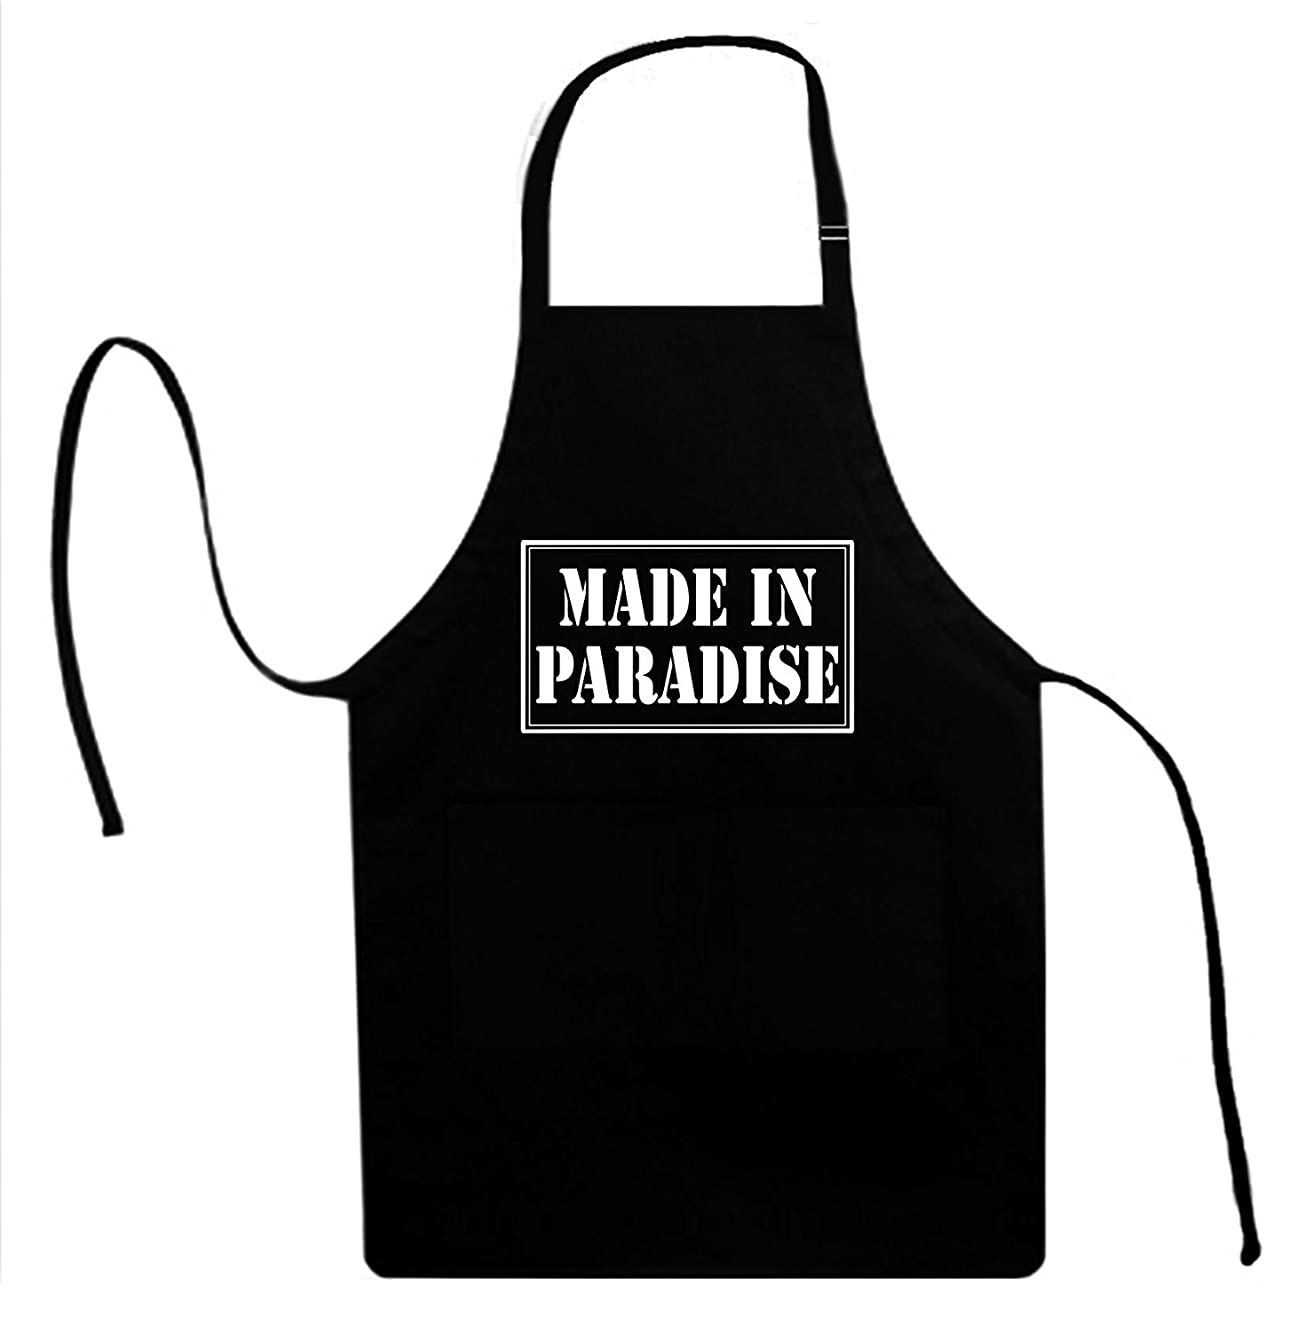 Starfactr (MADE IN PARADISE) Unisex Adult Novelty Apron